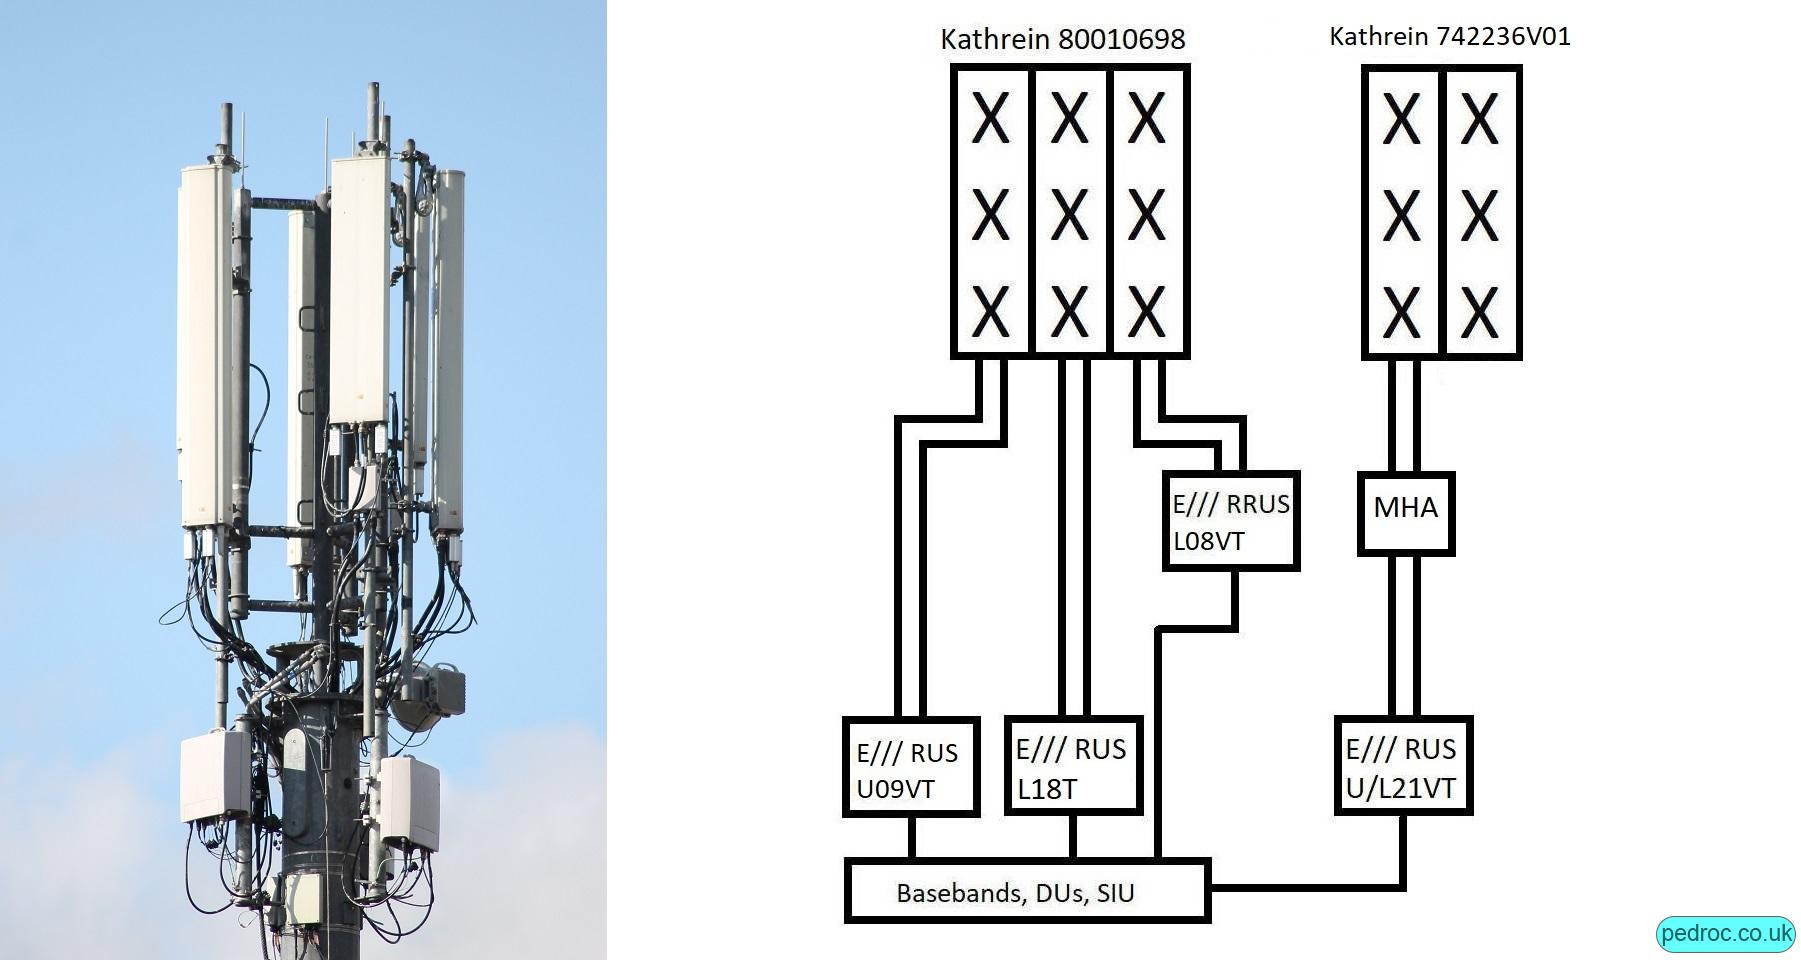 High Capacity Configuration using triple band Kathrein 80010698 antennas and a Kathrein dual band 7442236V01 or similar. 80010698 has UG09, L18, L08 off RRUS11 with the other antennas carrying the 2100MHz.